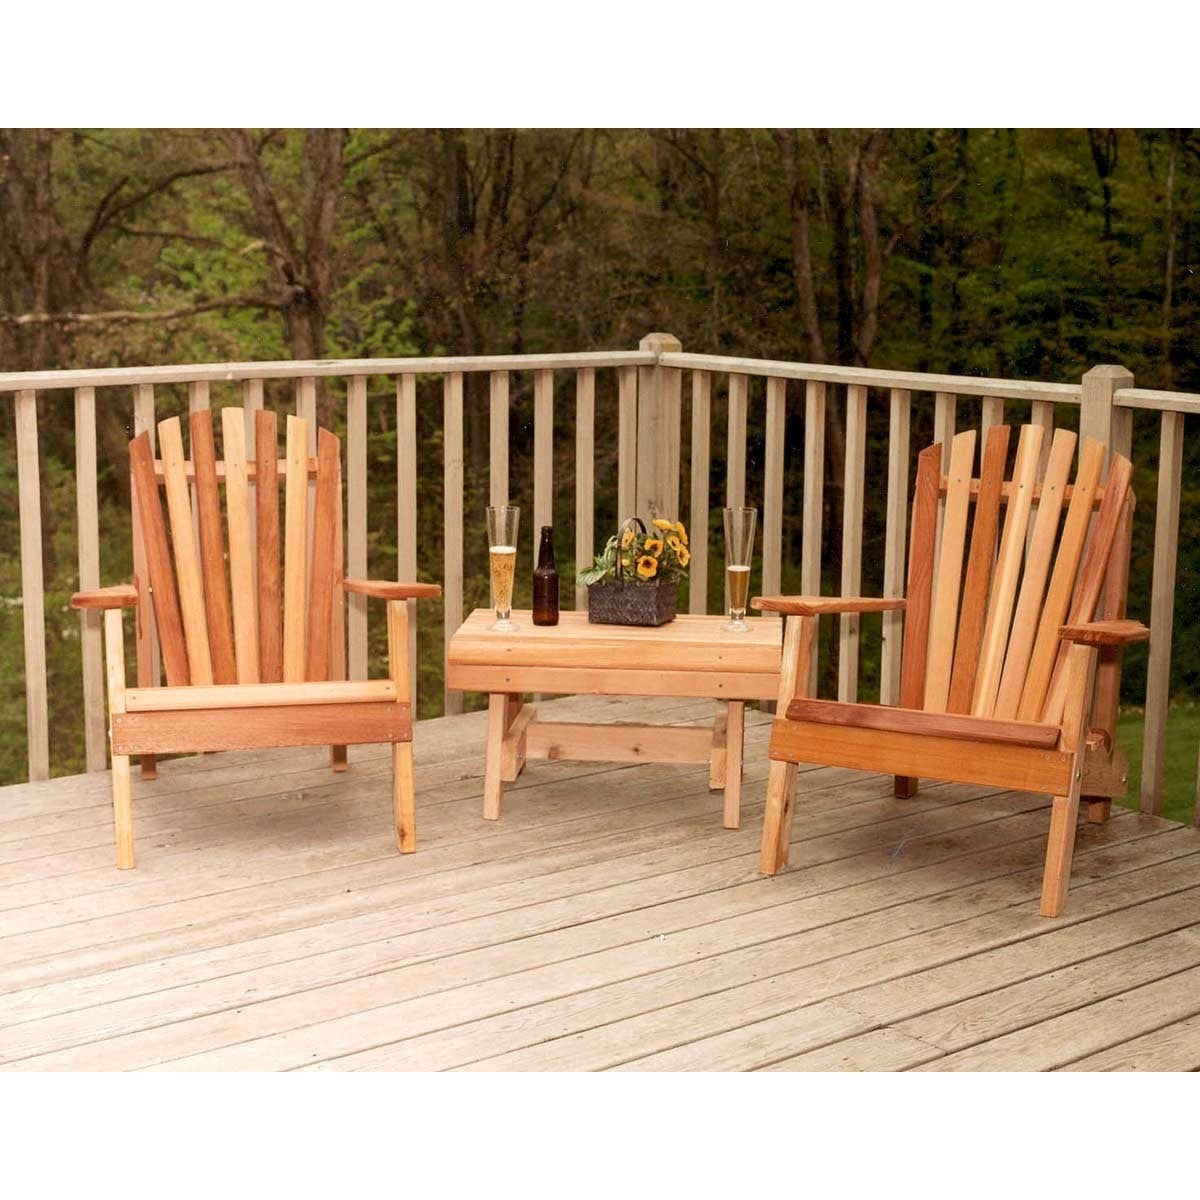 Creekvine Designs Cedar American Forest Adirondack Chair Collection - Swings and More